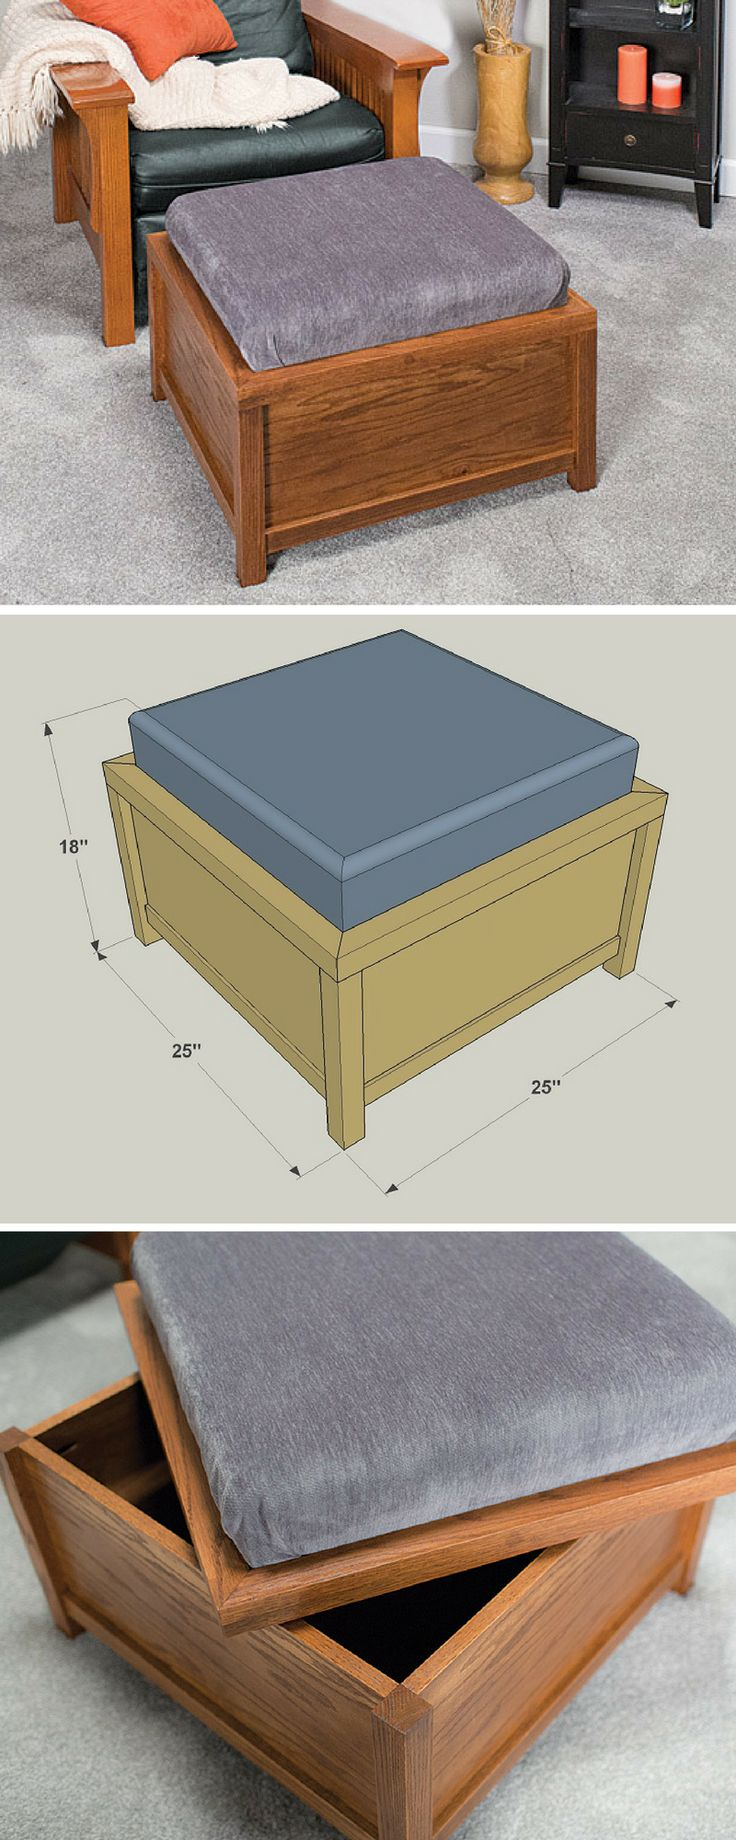 Wooden Ottoman With Storage Designs ~ How to build a diy storage ottoman free printable